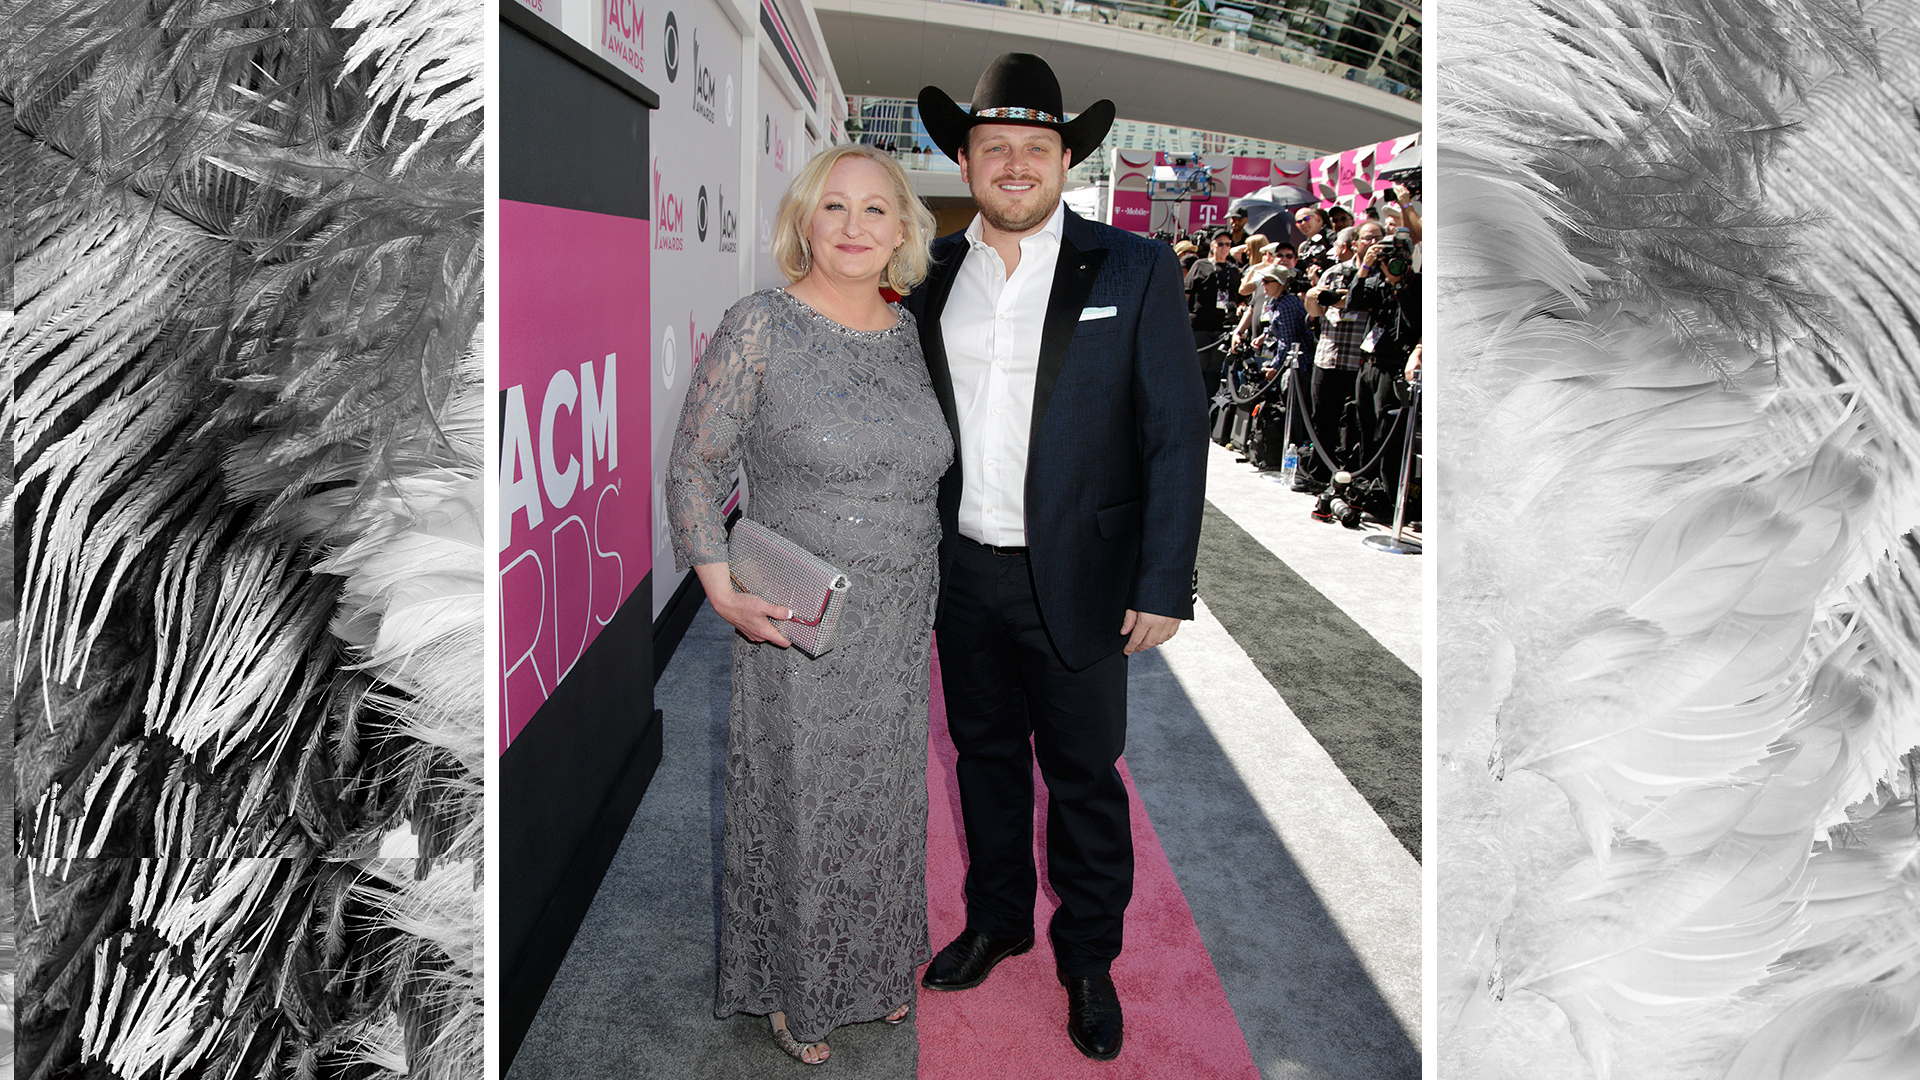 Josh Abbott poses next to his mother, Lynette.